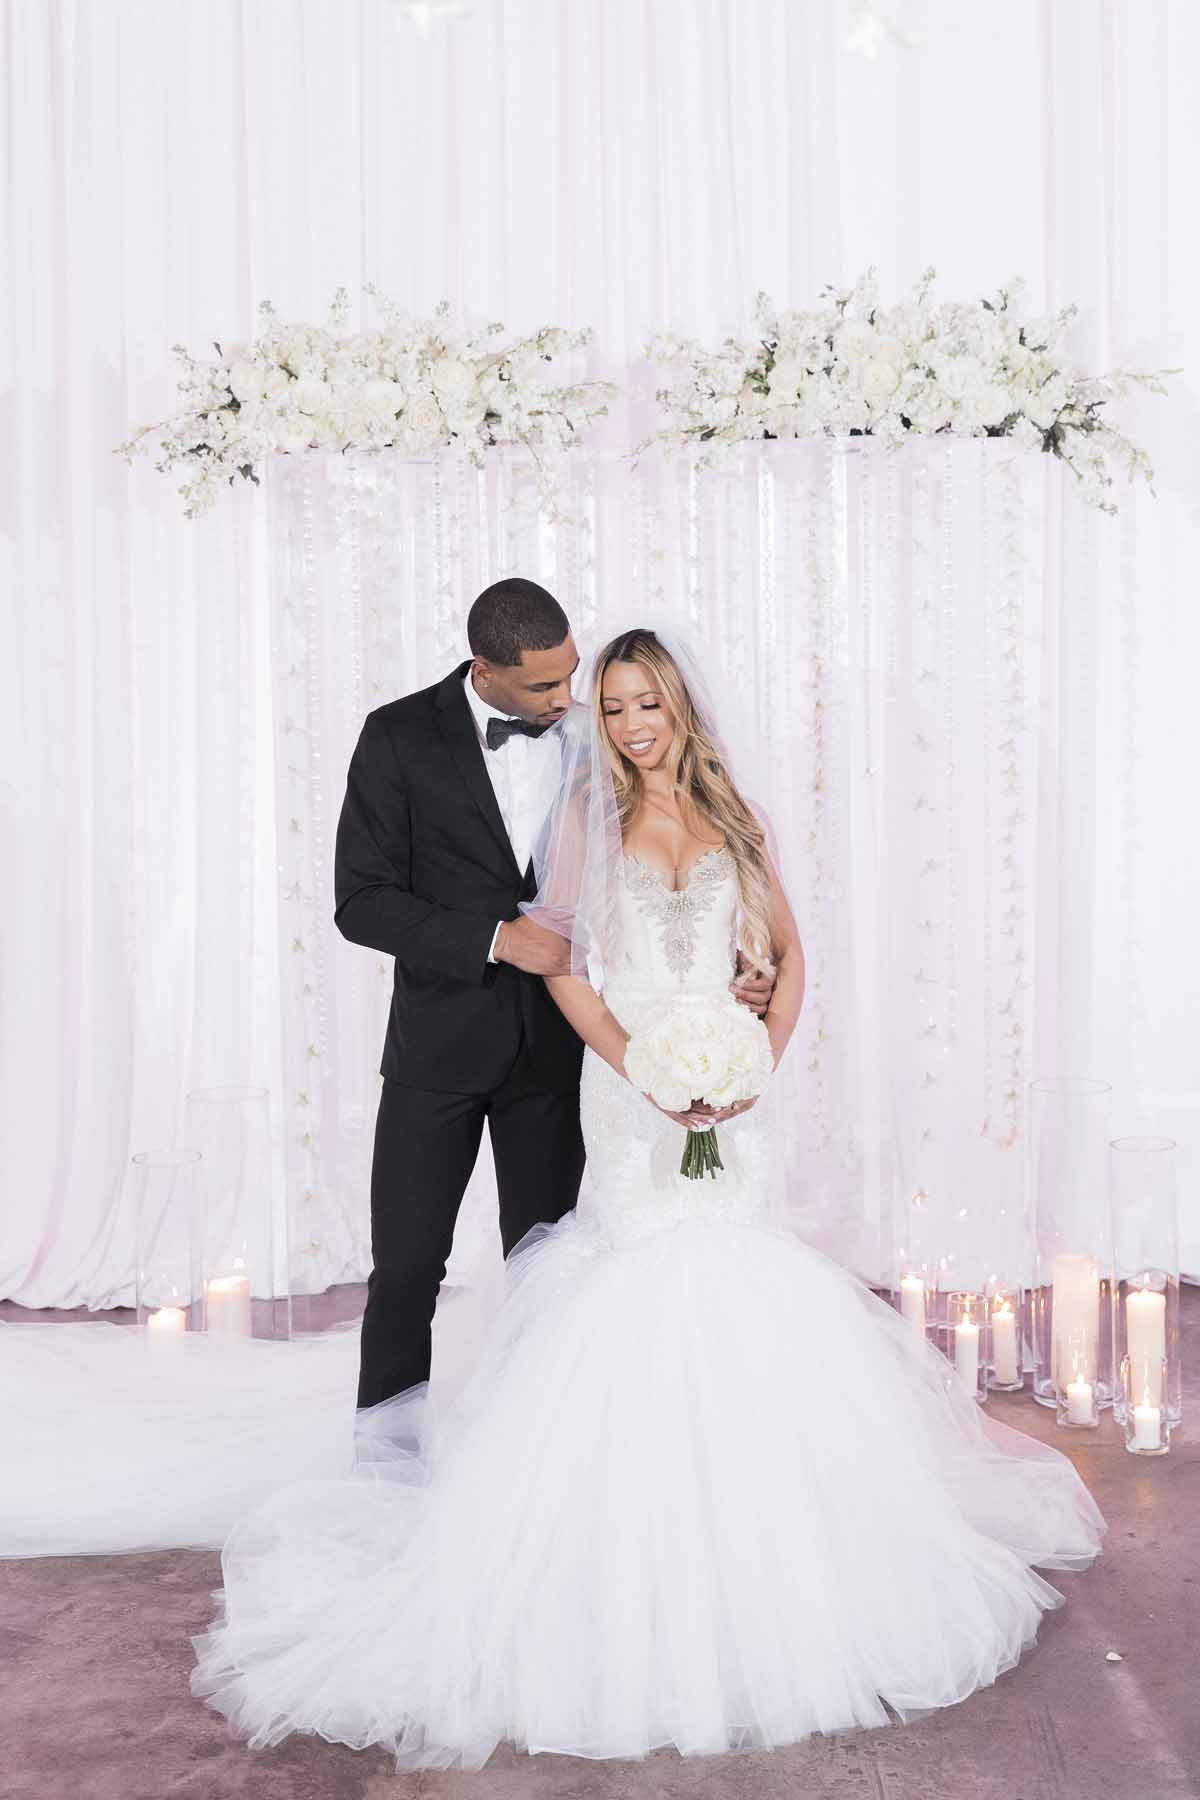 Bride and groom in front of their modern clear lucite wedding arch with white flowers